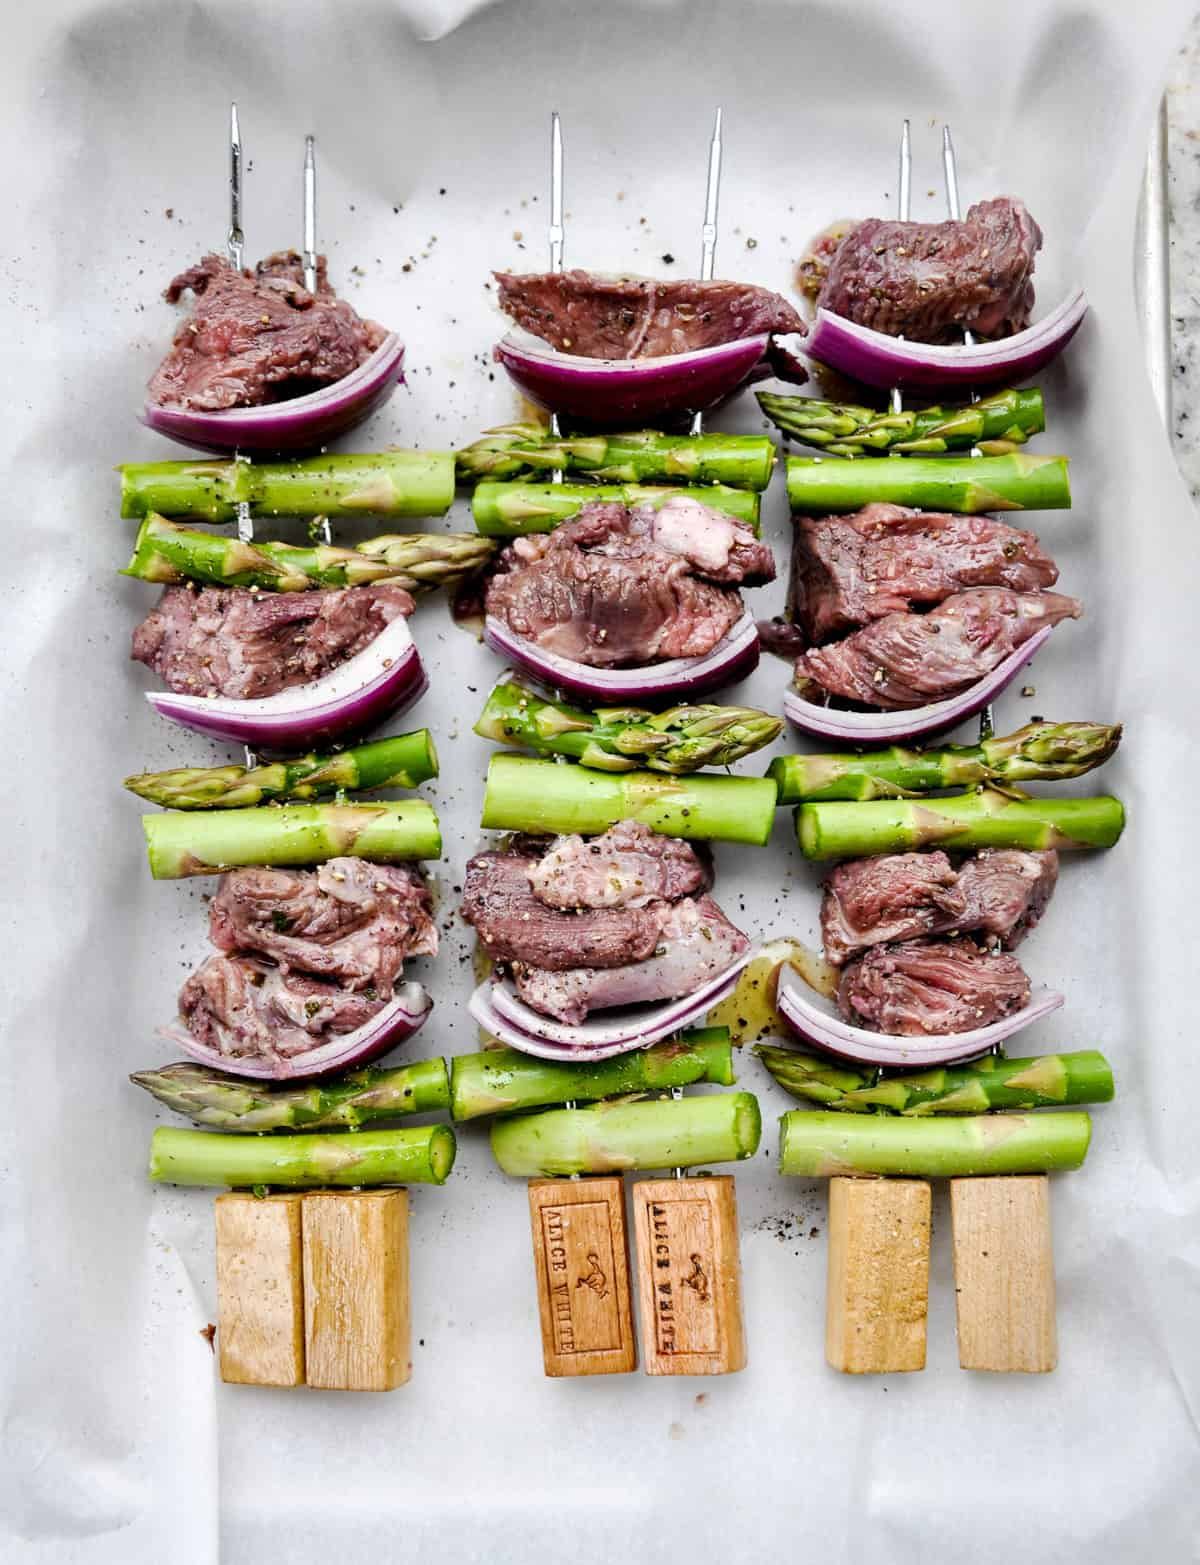 Lamb, Asparagus and Onion on skewers